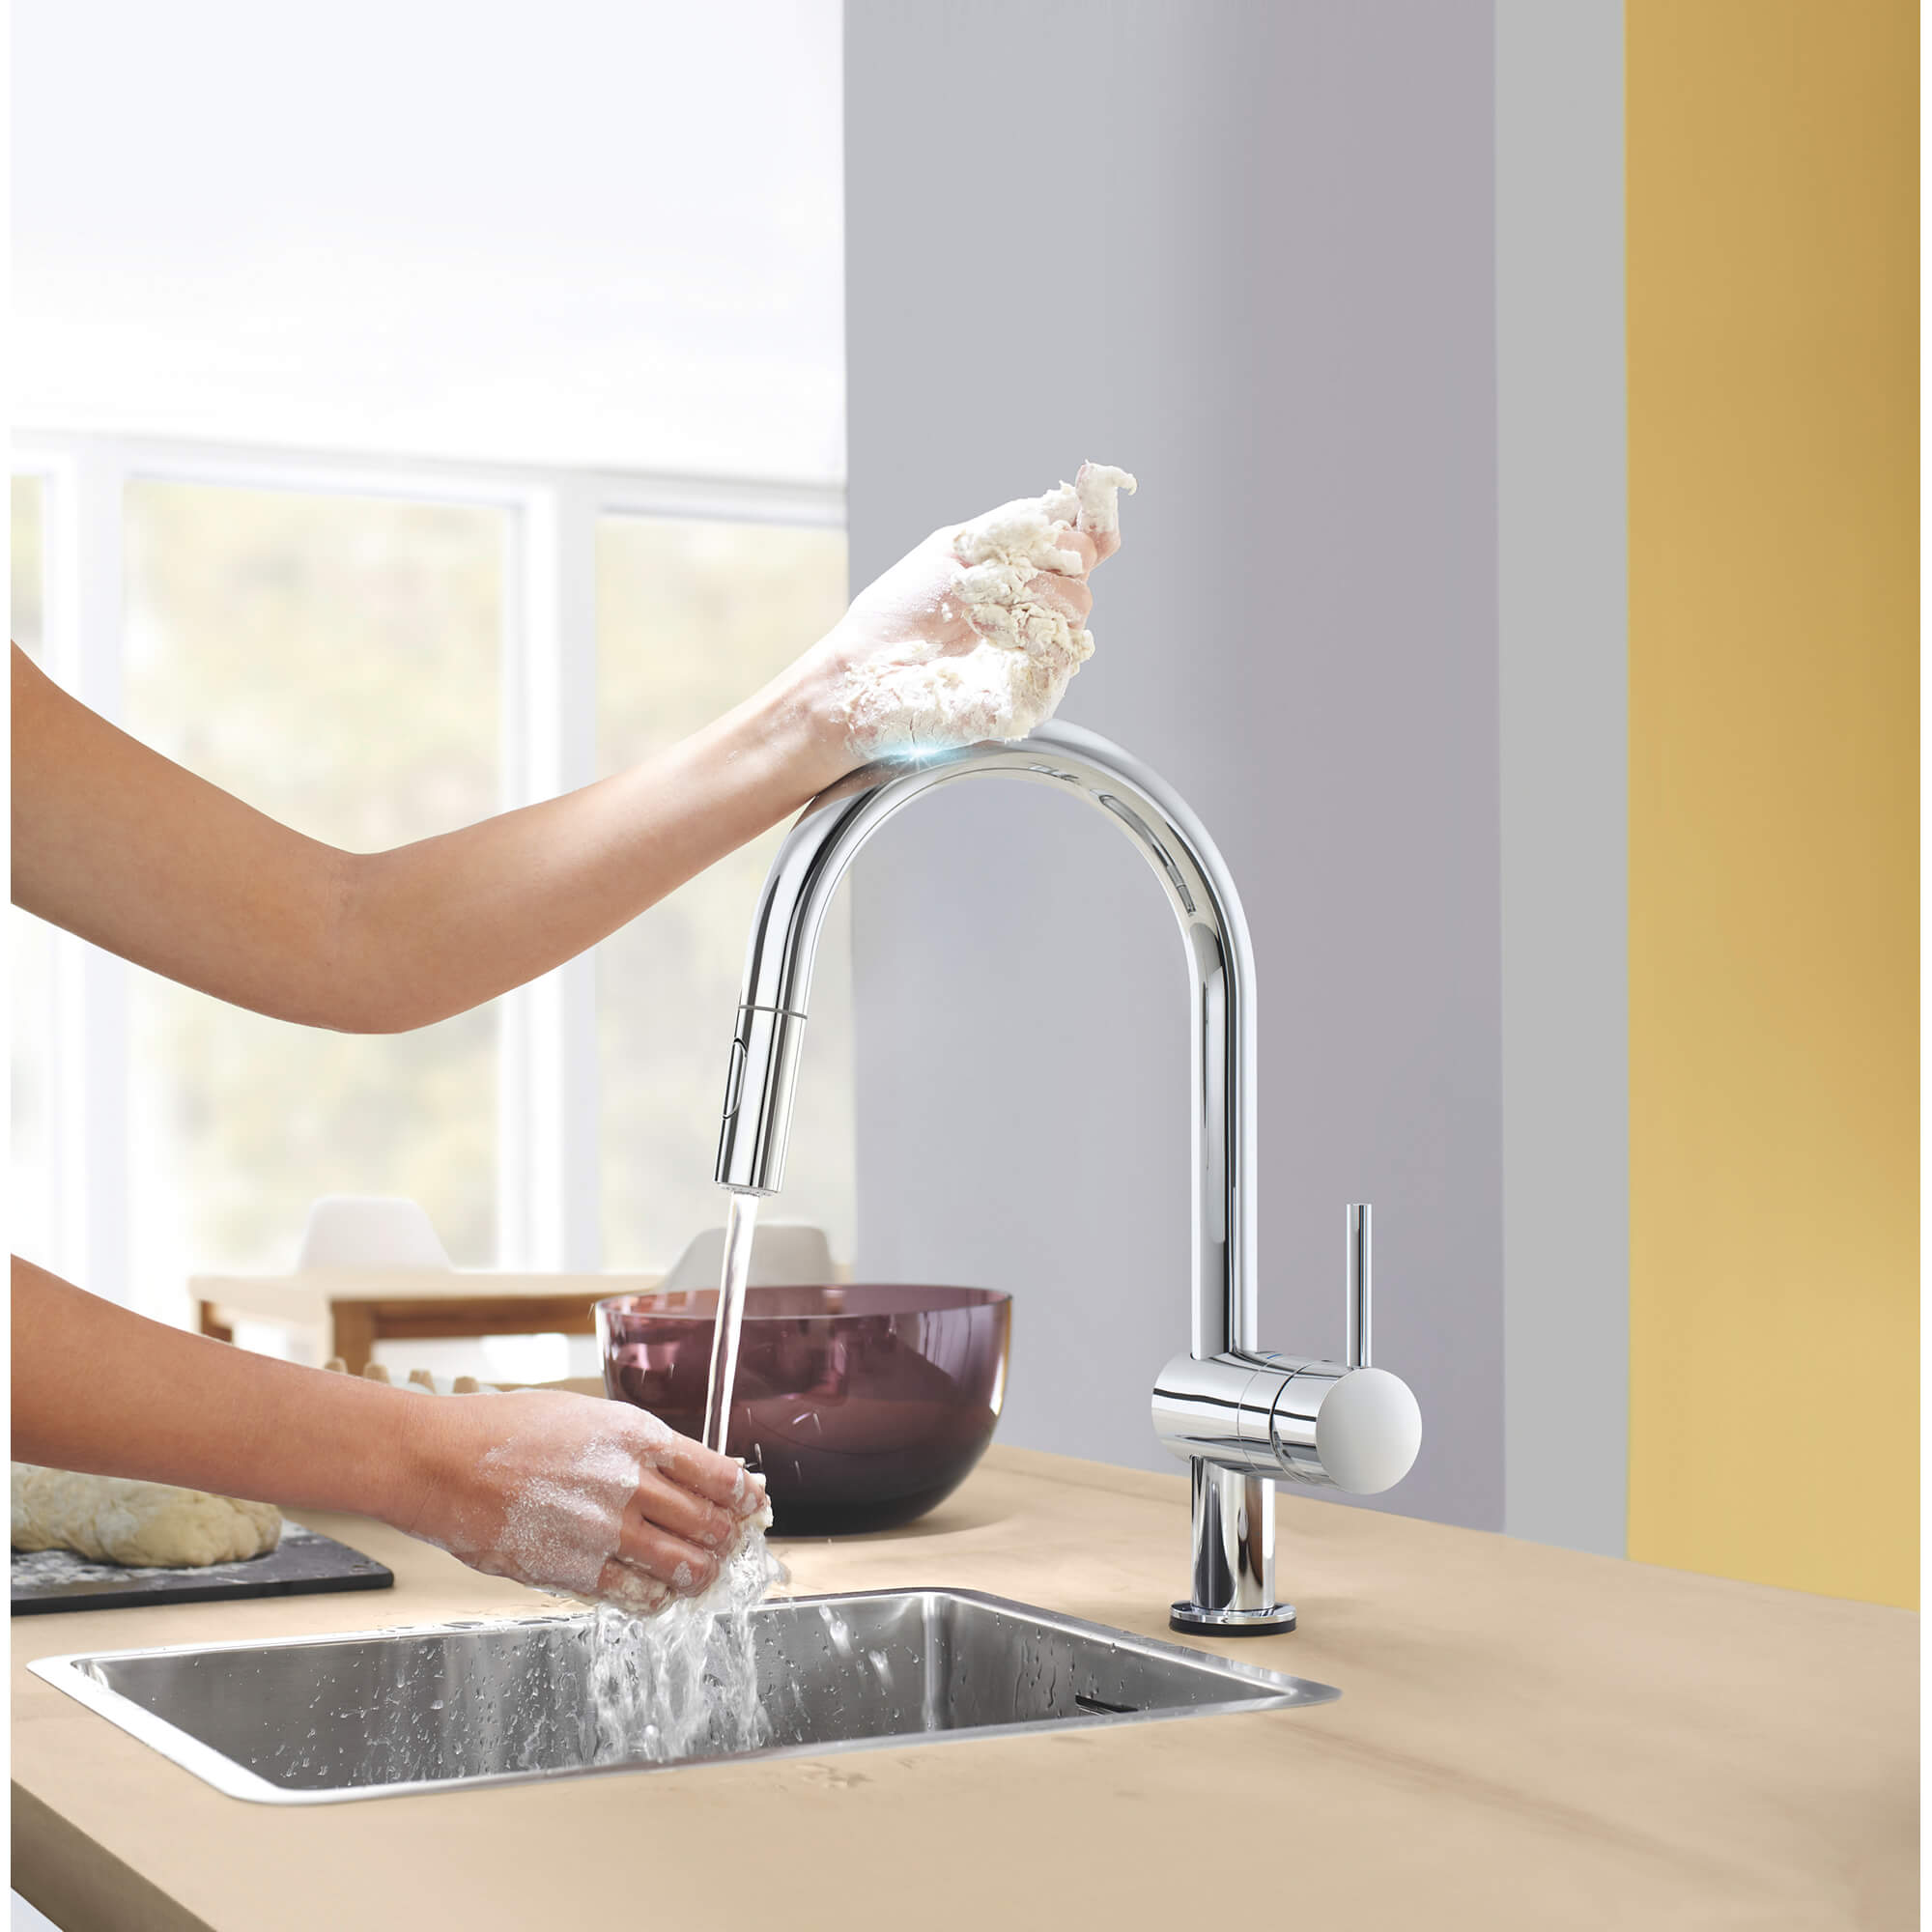 Grohe Pull Down Kitchen Faucet W Additional Touch Operated S